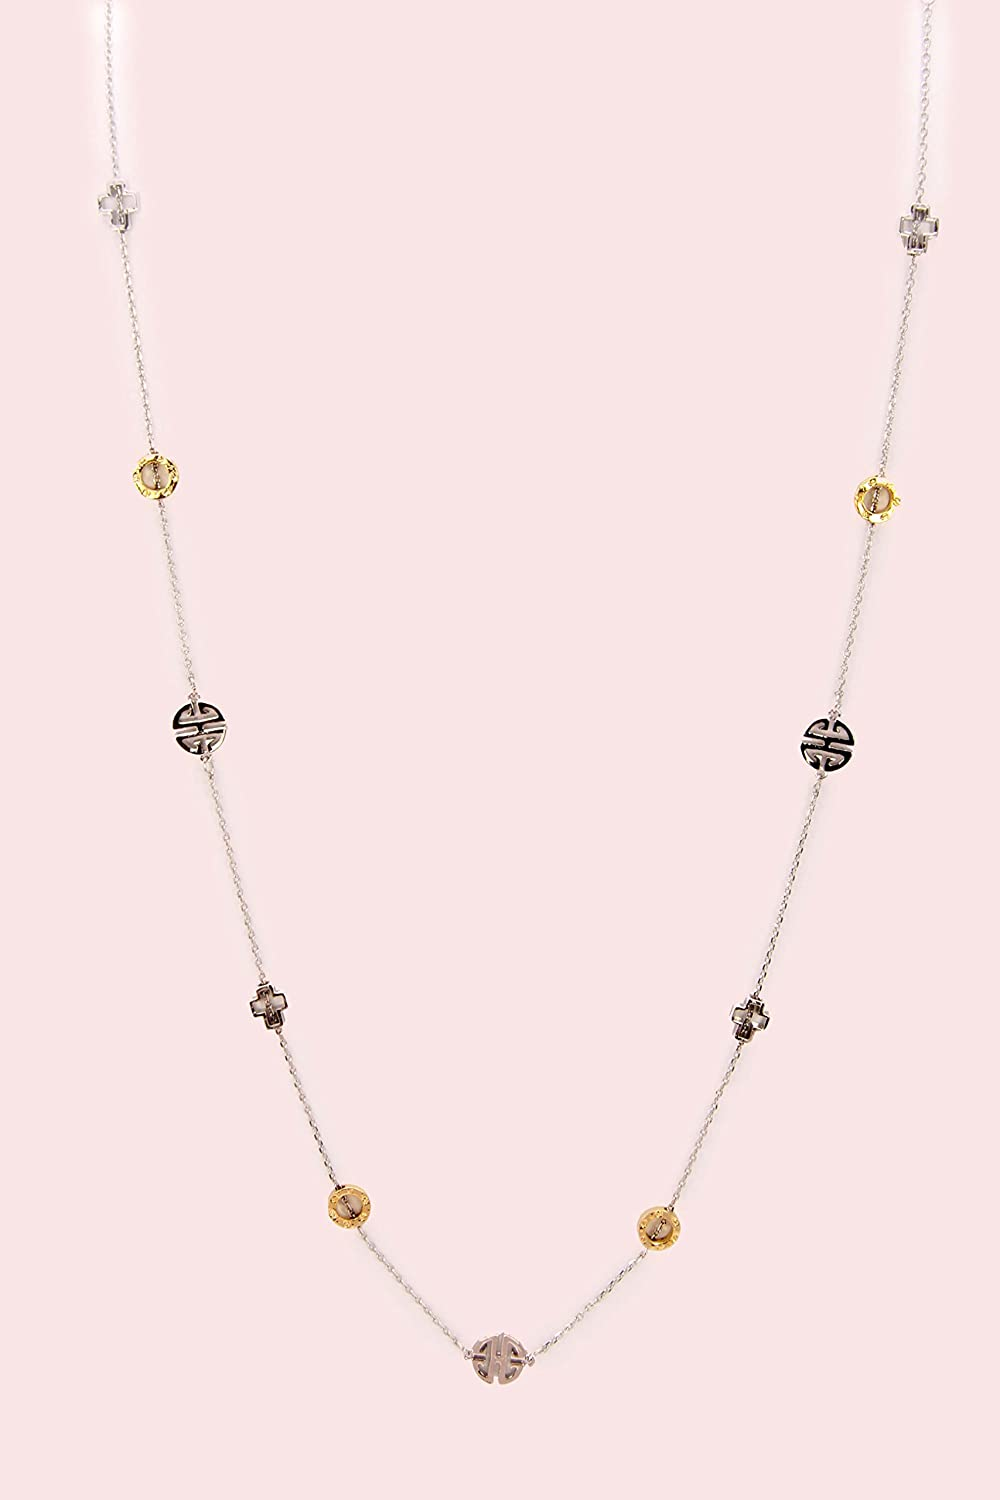 Two Tone Longevity Station Necklace 48 Inch Long